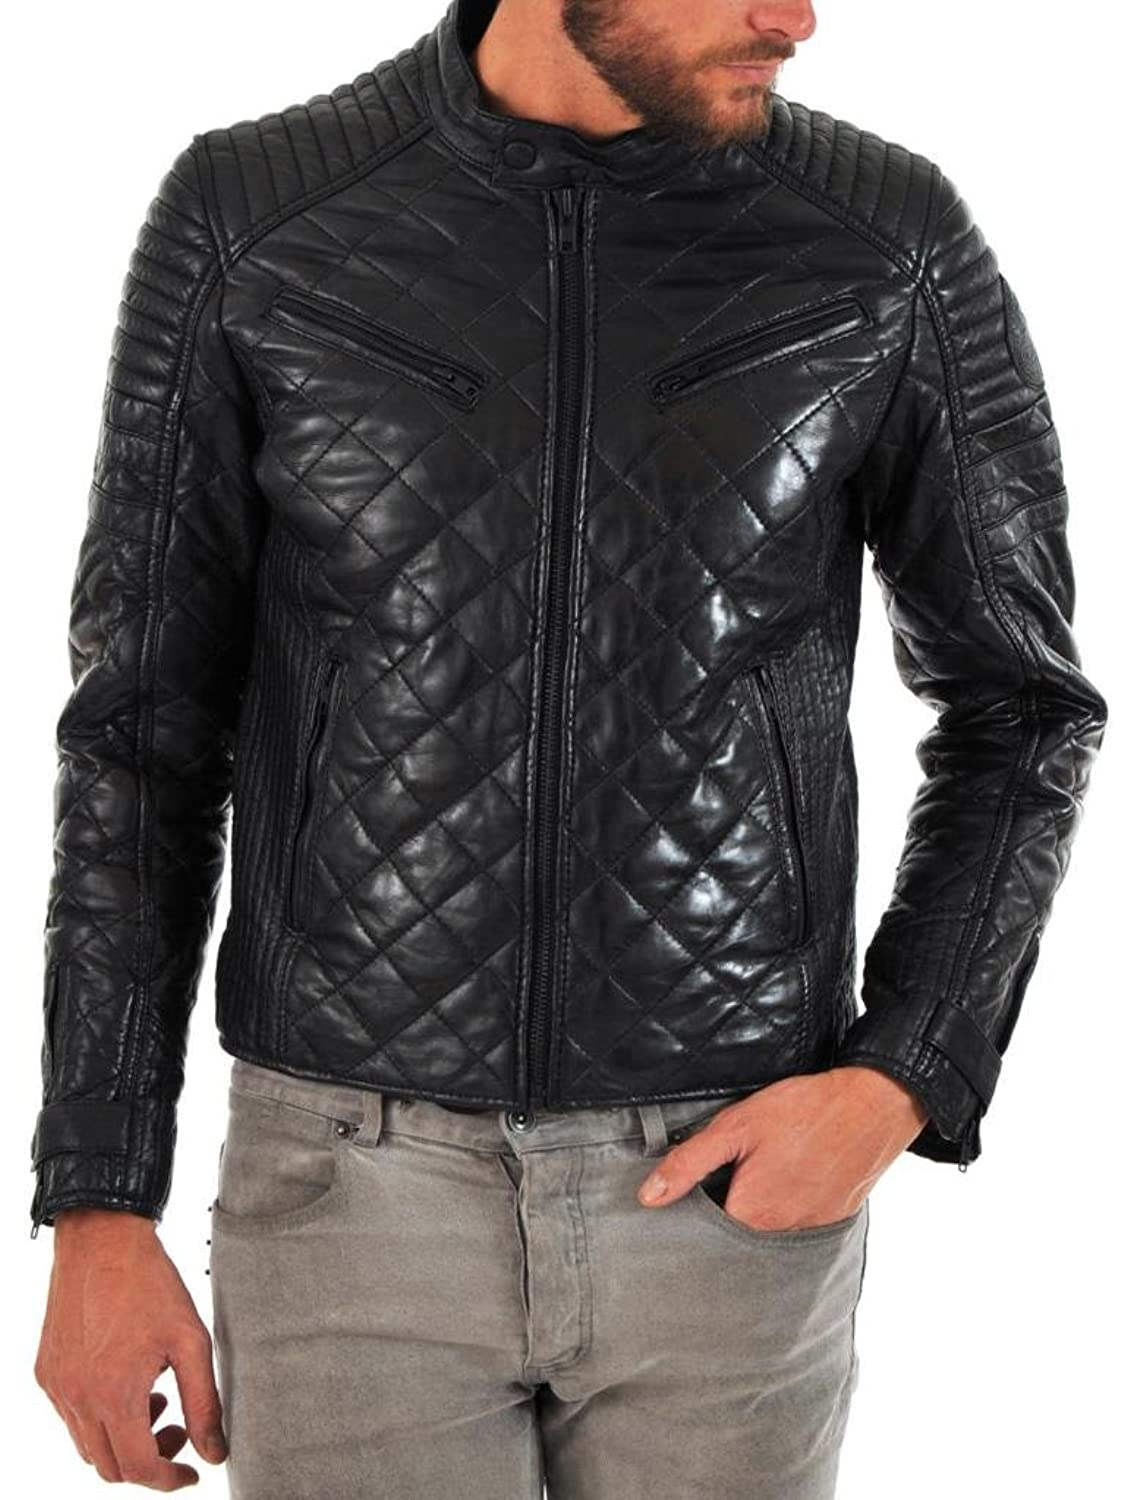 Men Leather Jacket Biker Motorcycle Coat Slim Fit Outwear Jackets AUK068